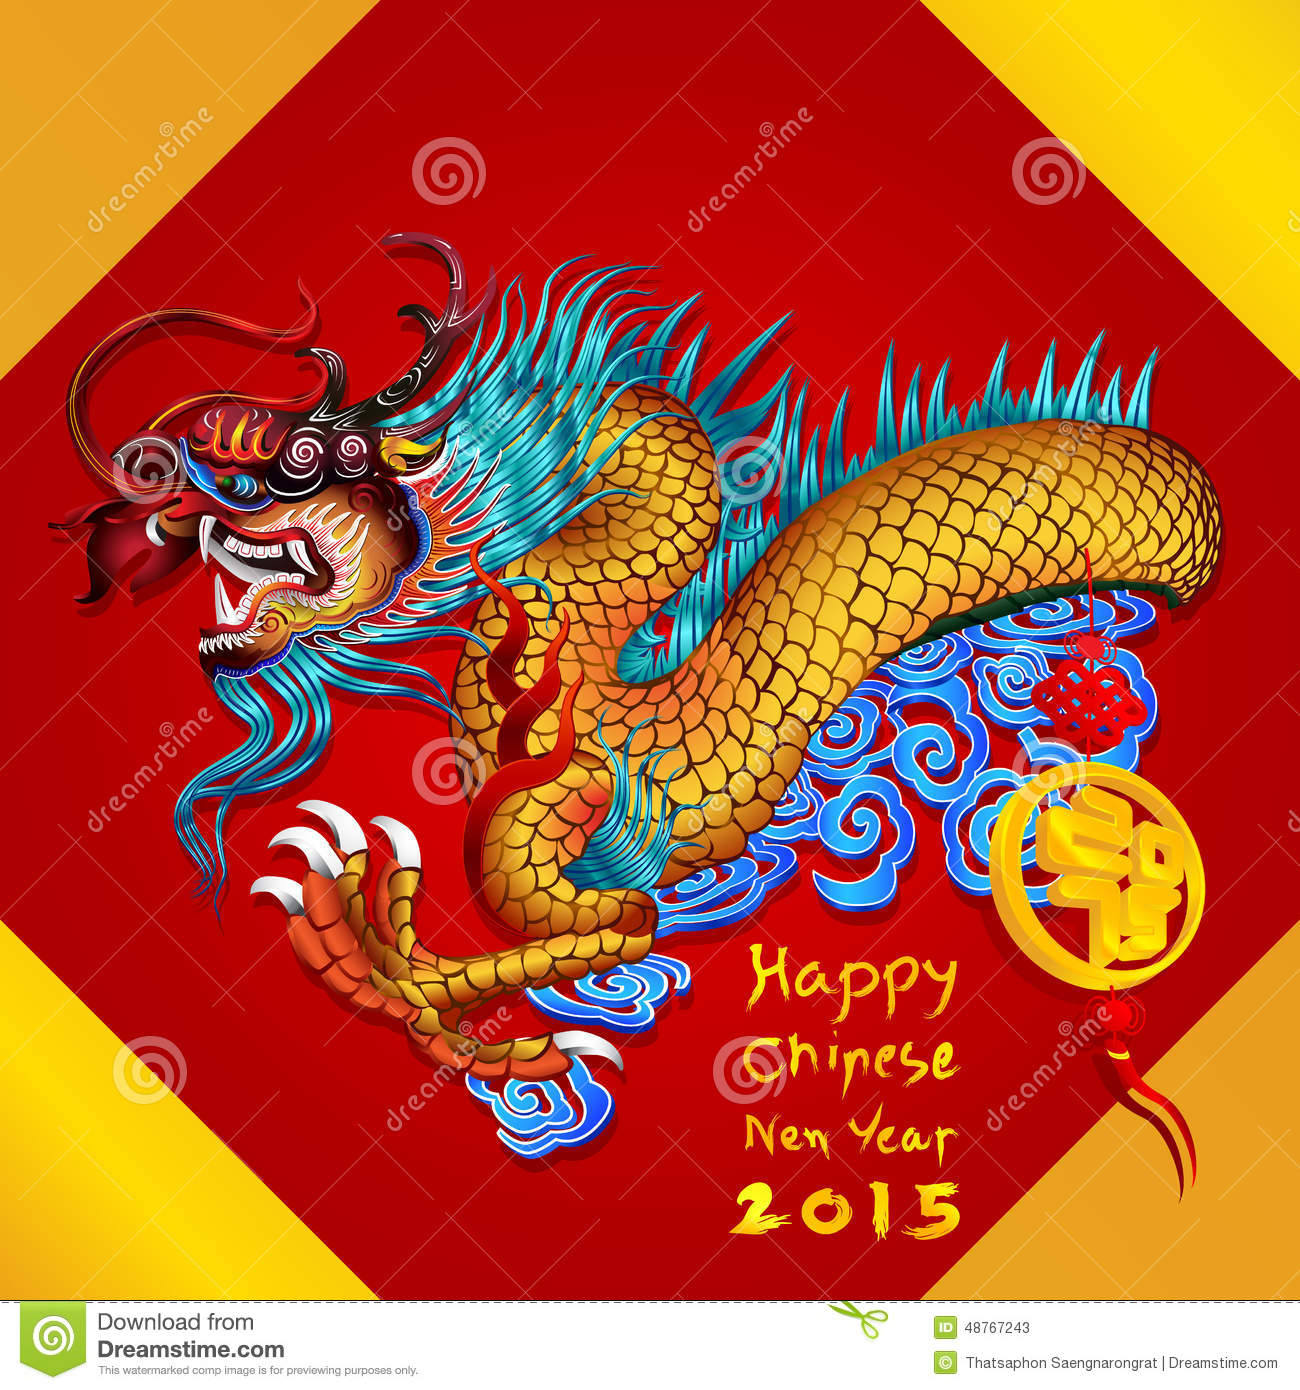 2015 Chinese New Year Posters   Zazzle.co.uk  Happy Chinese New Year 2015